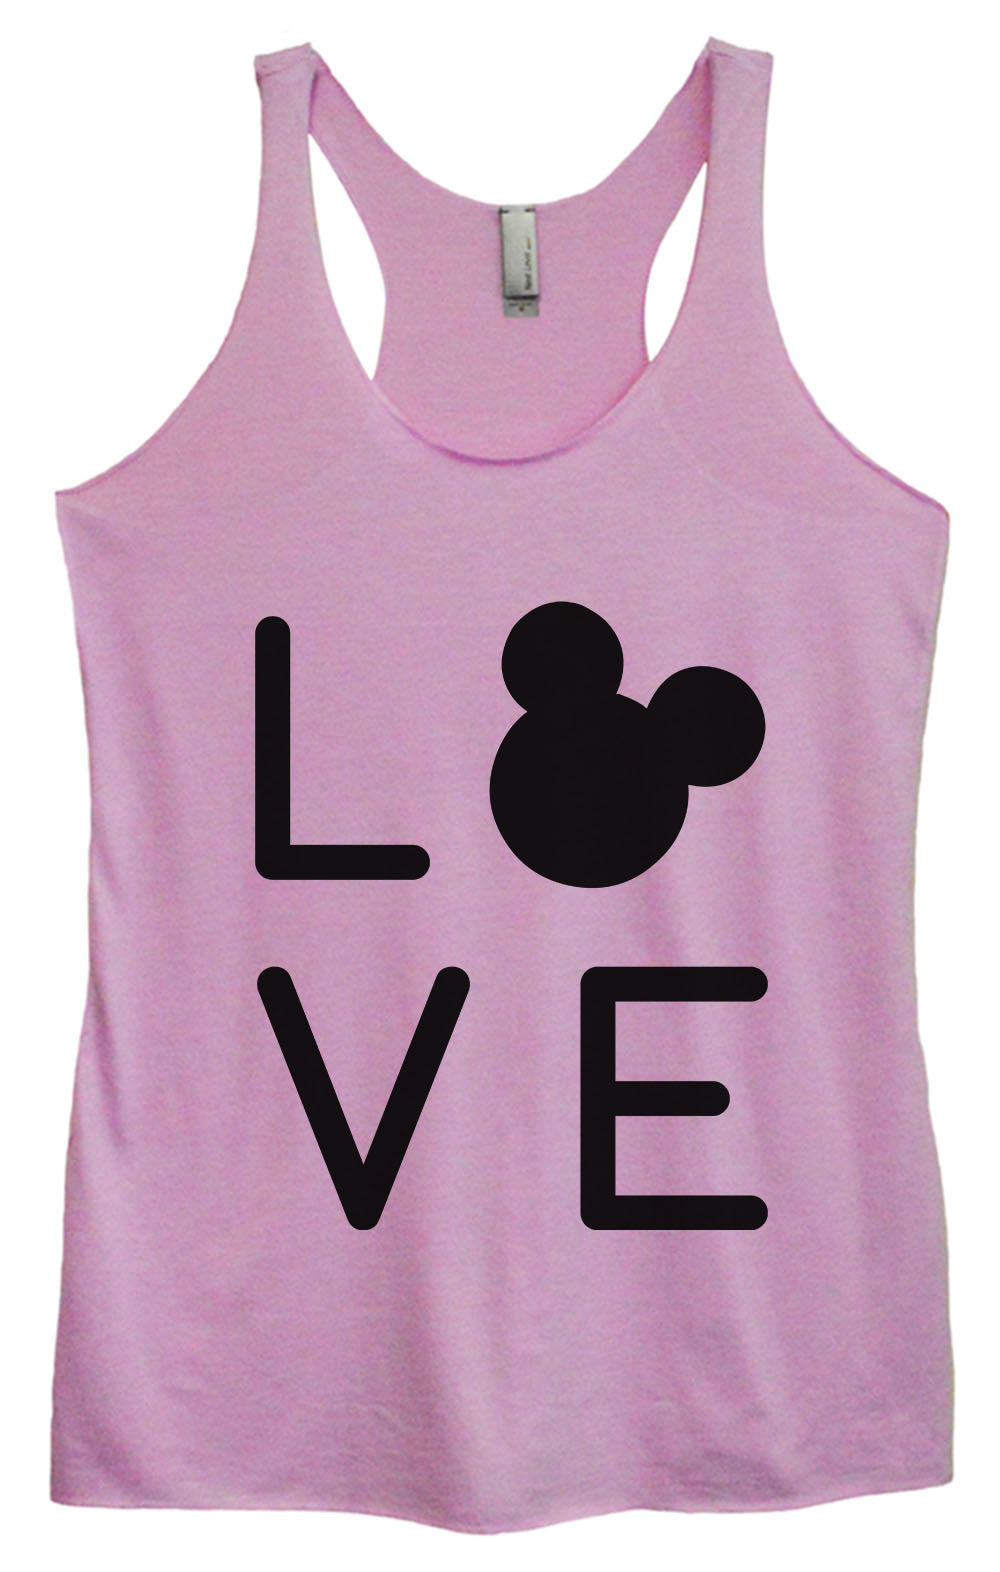 Womens Fashion Triblend Tank Top - Love - Tri-1574 - Funny Shirts Tank Tops Burnouts and Triblends  - 1